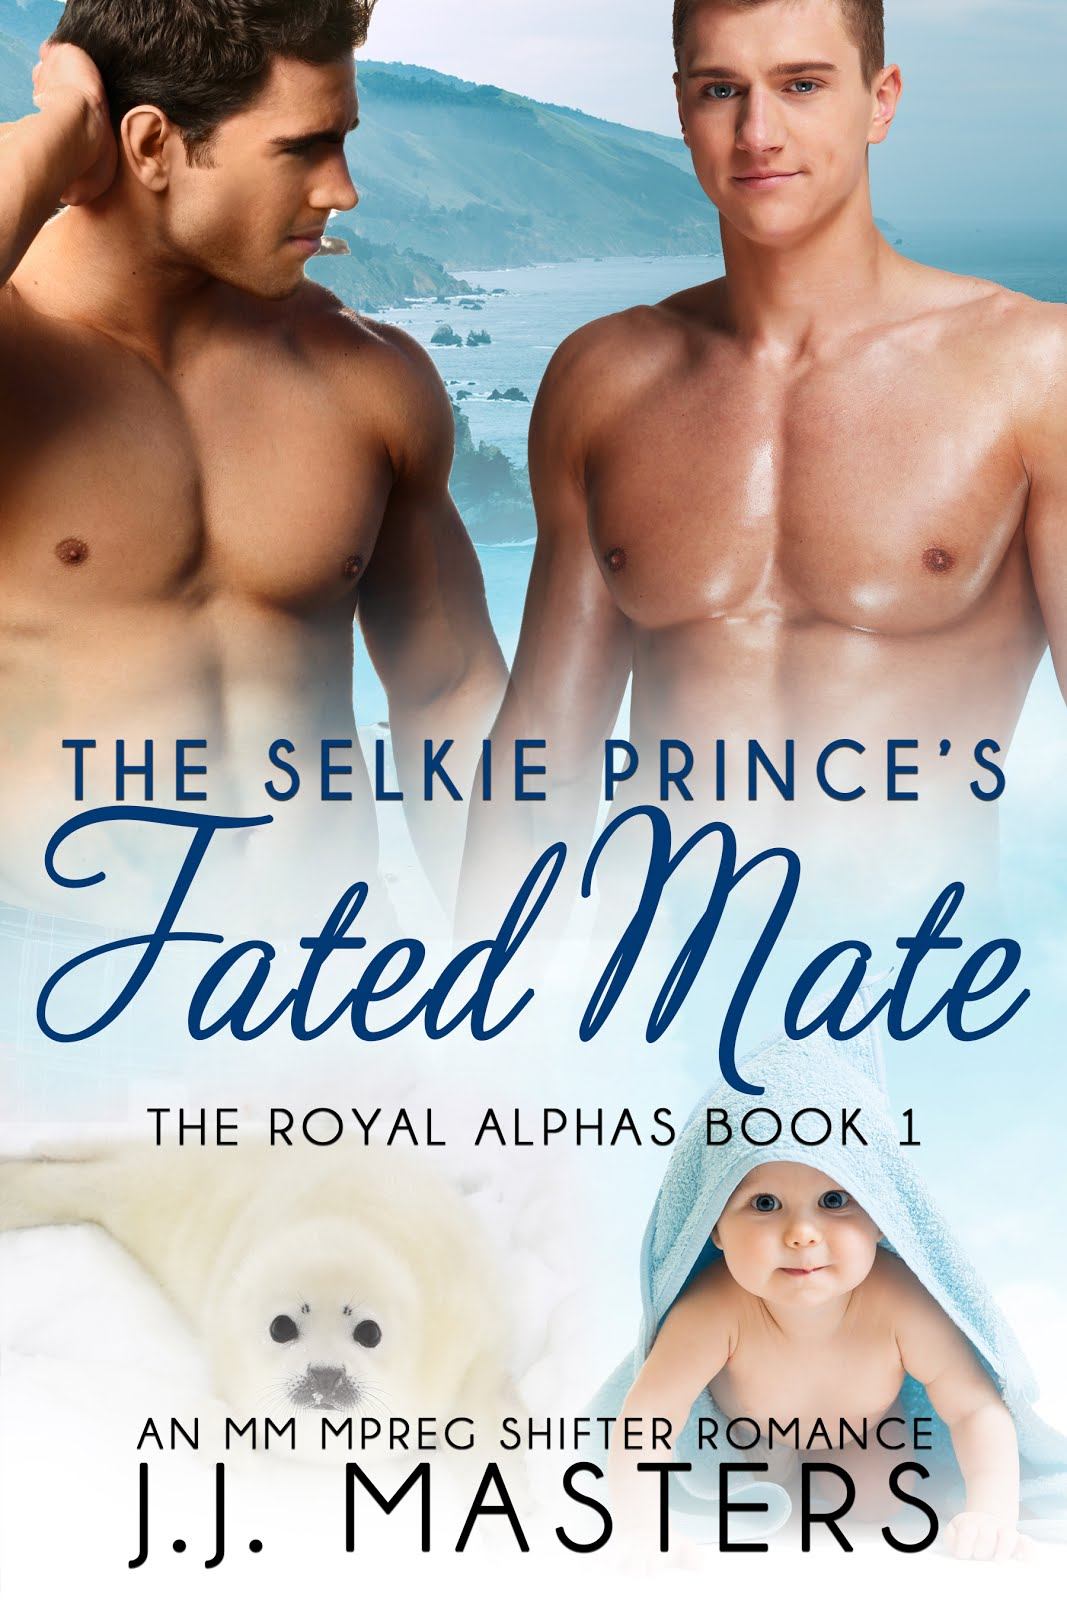 The Selkie Prince's Fated Mate